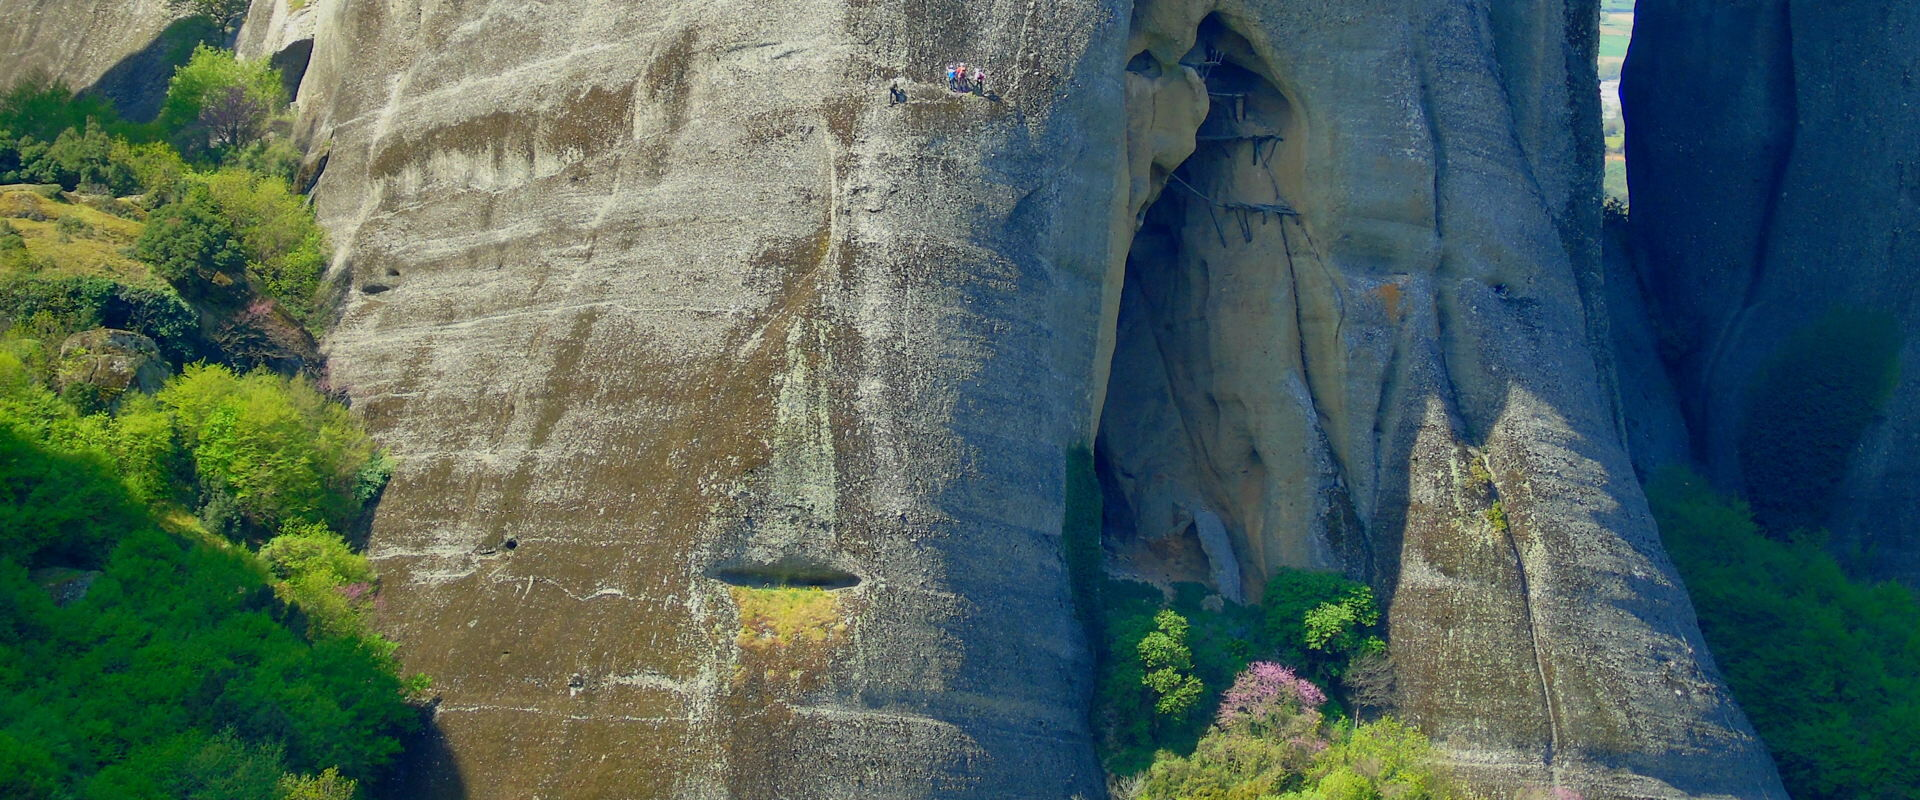 Rock climbing in Greece